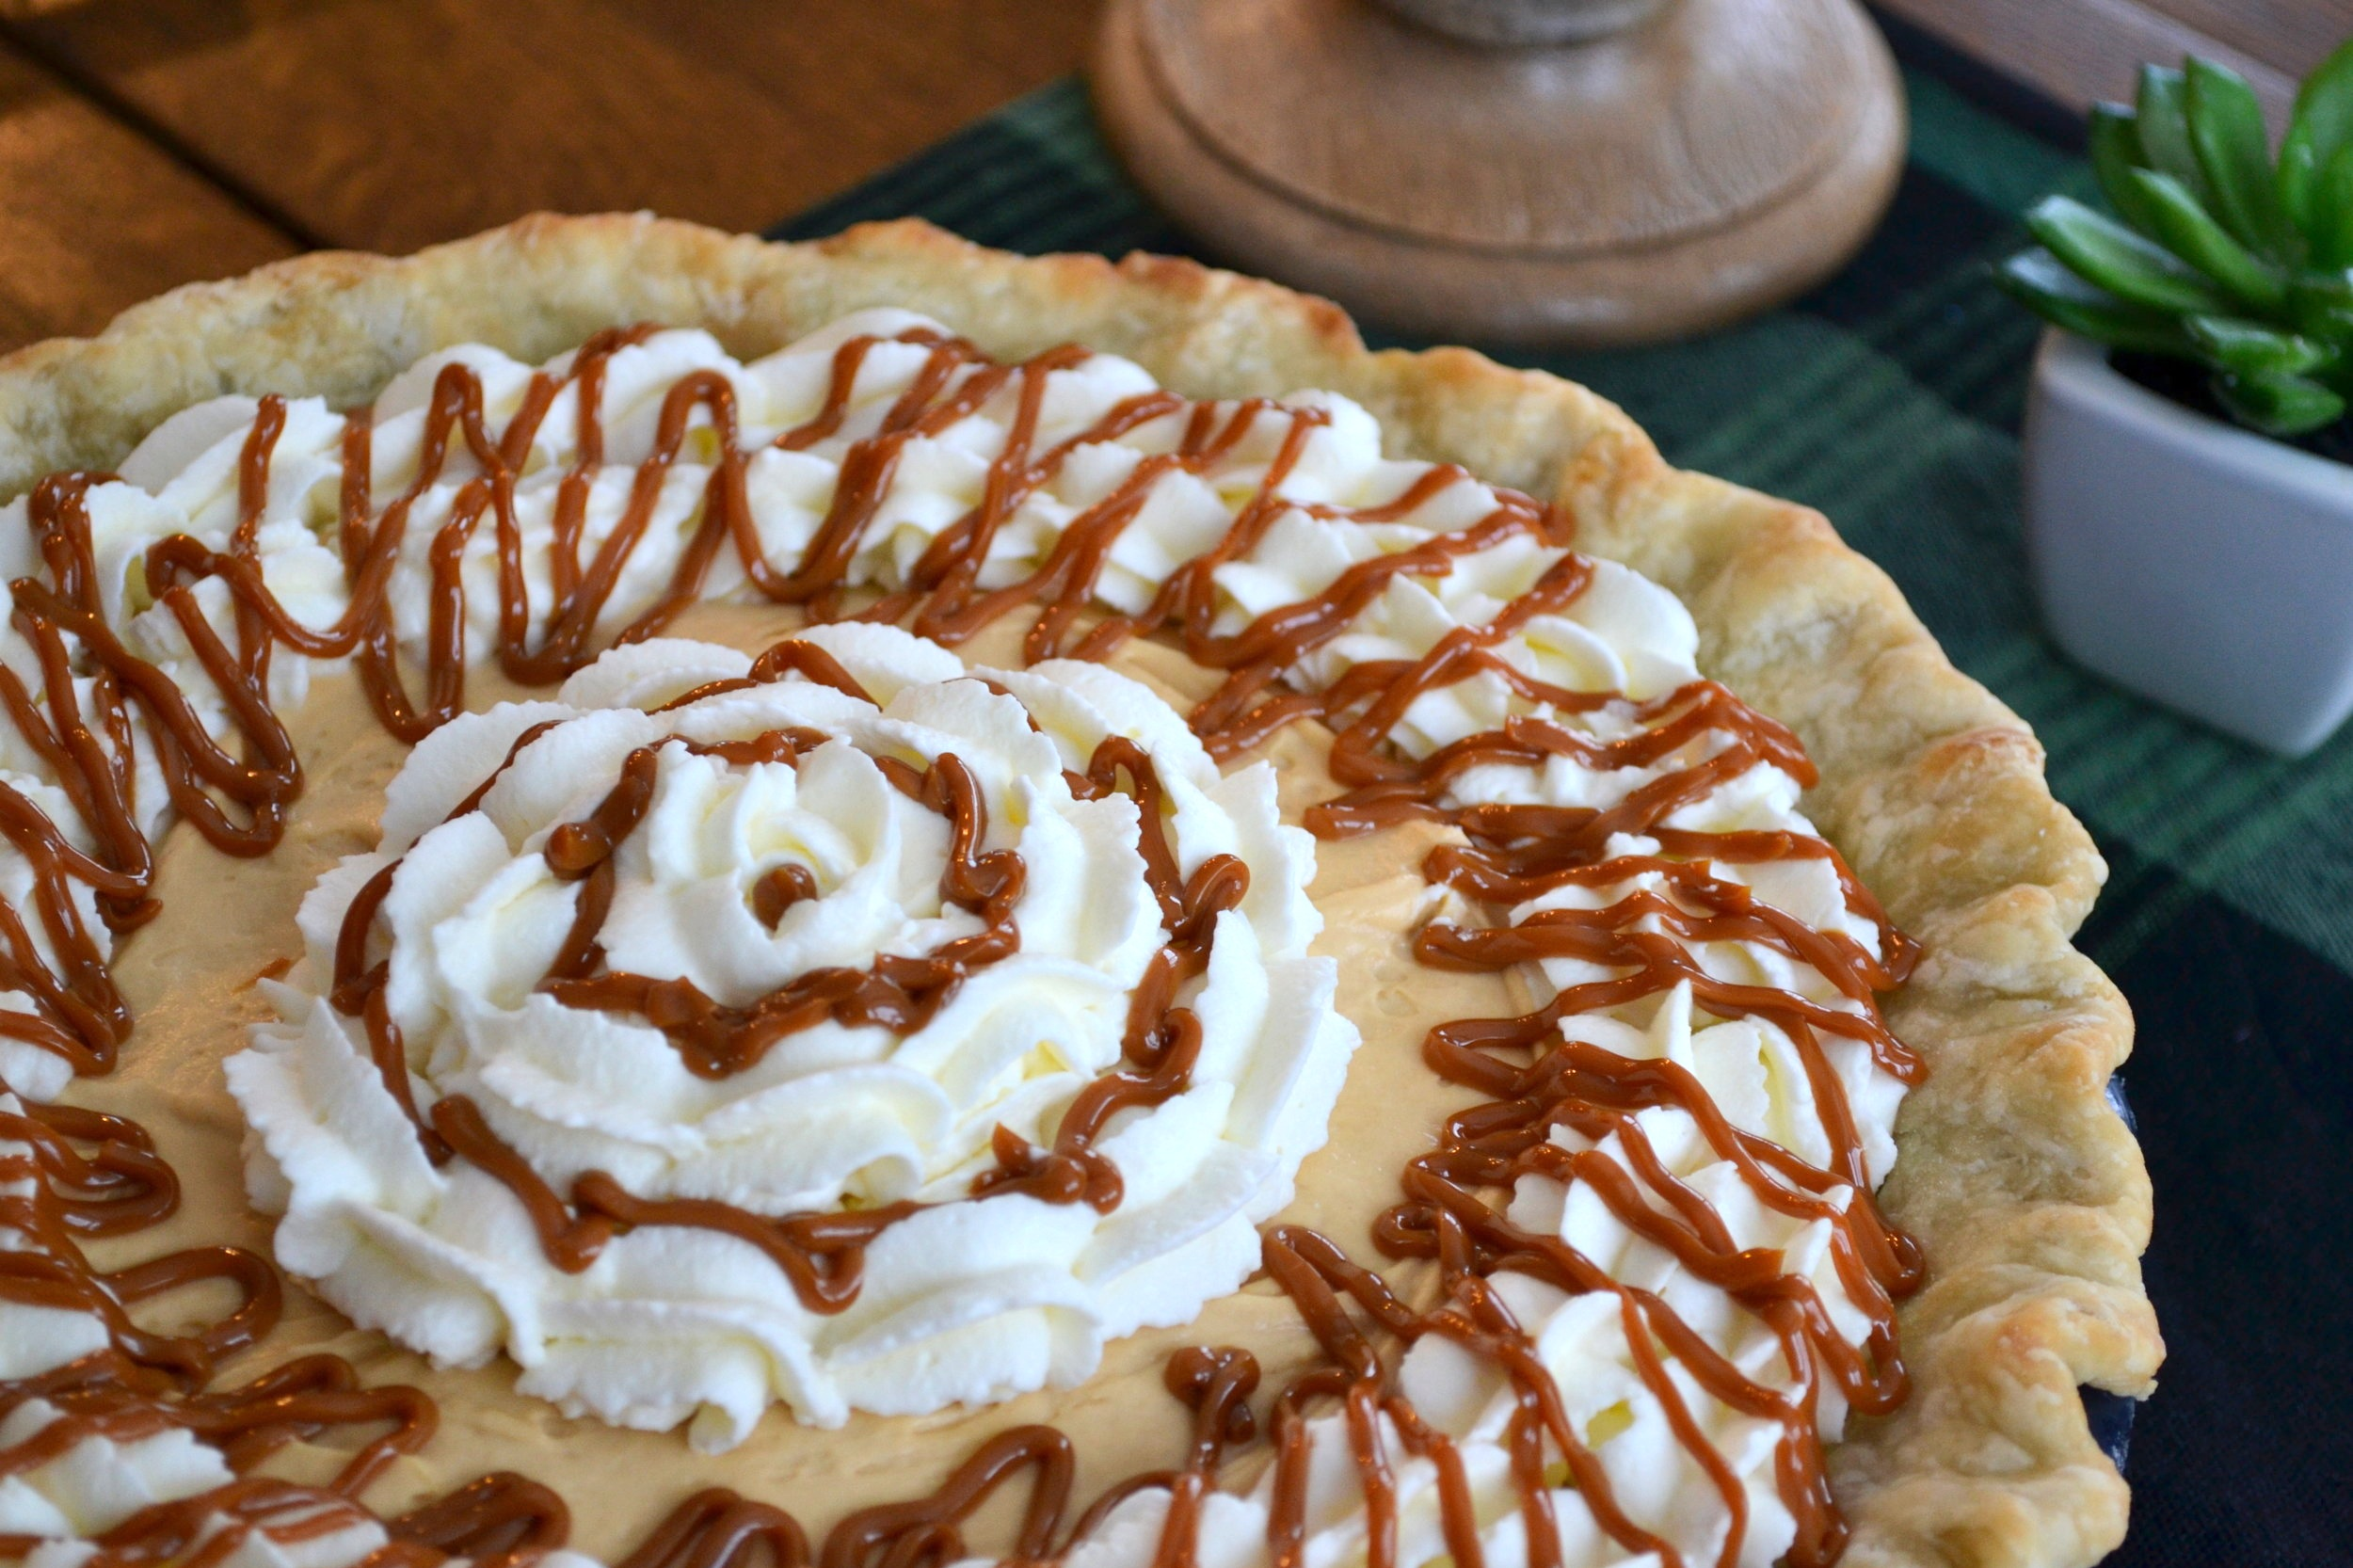 And yet, for as many times as I've made this pie, I've yet to get a photo of it sliced. Oh well, there's butter, caramel, and whipped cream, what more do you need to know?